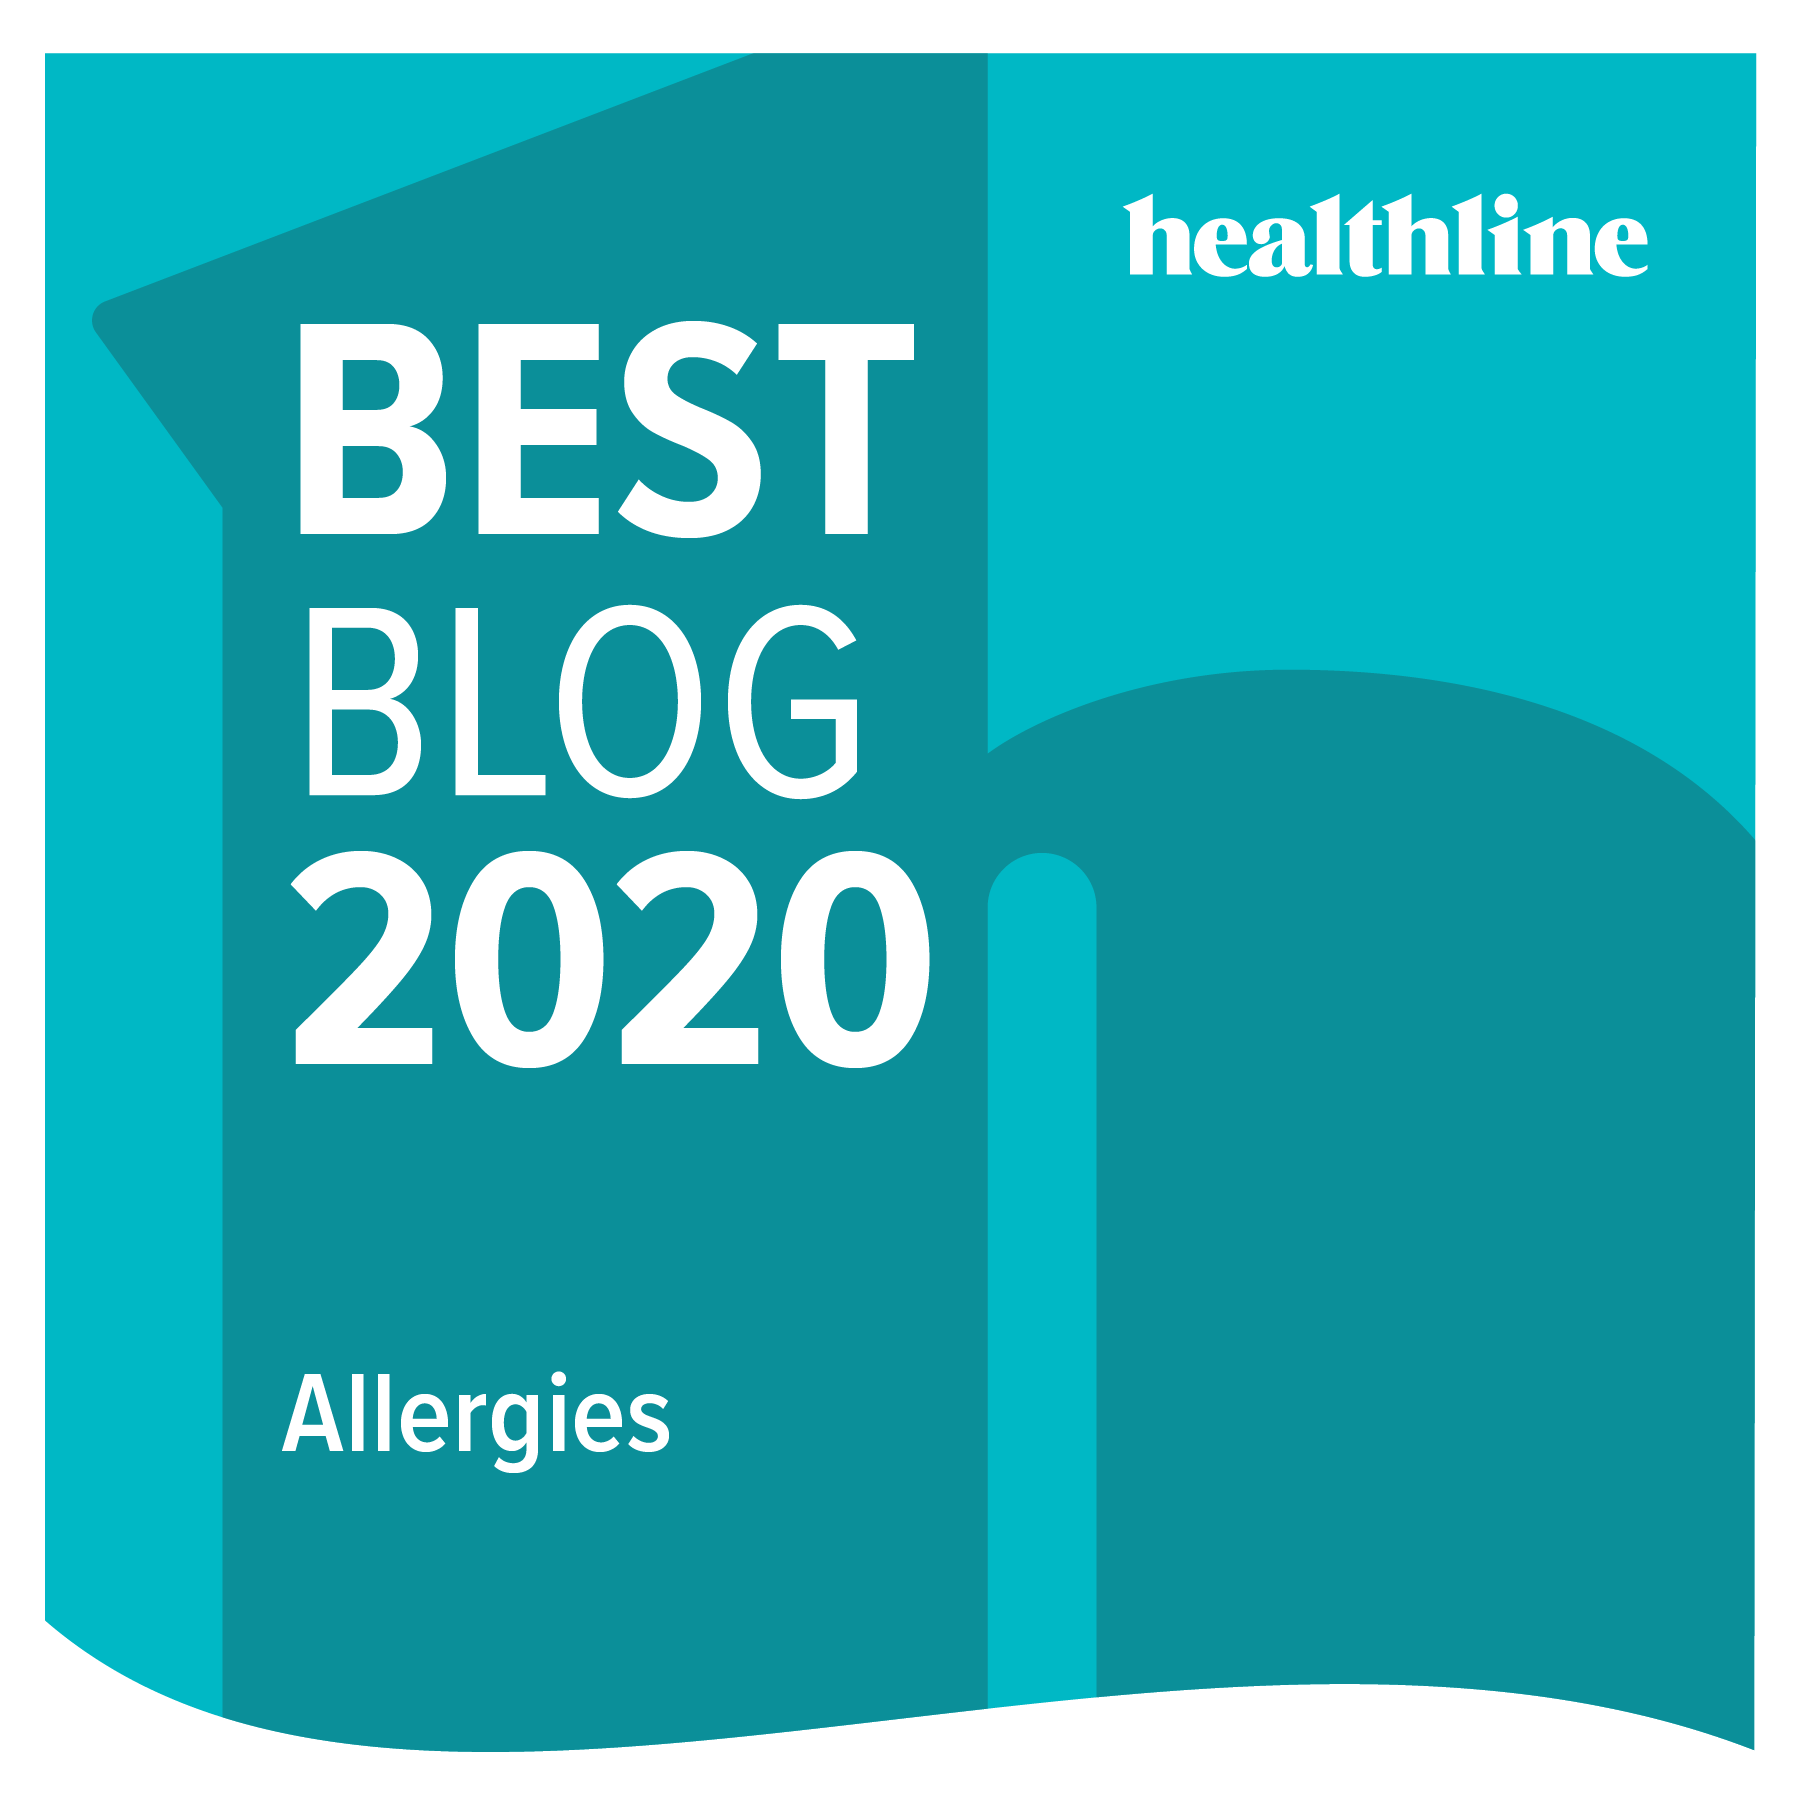 healthline allergies best blog 2020